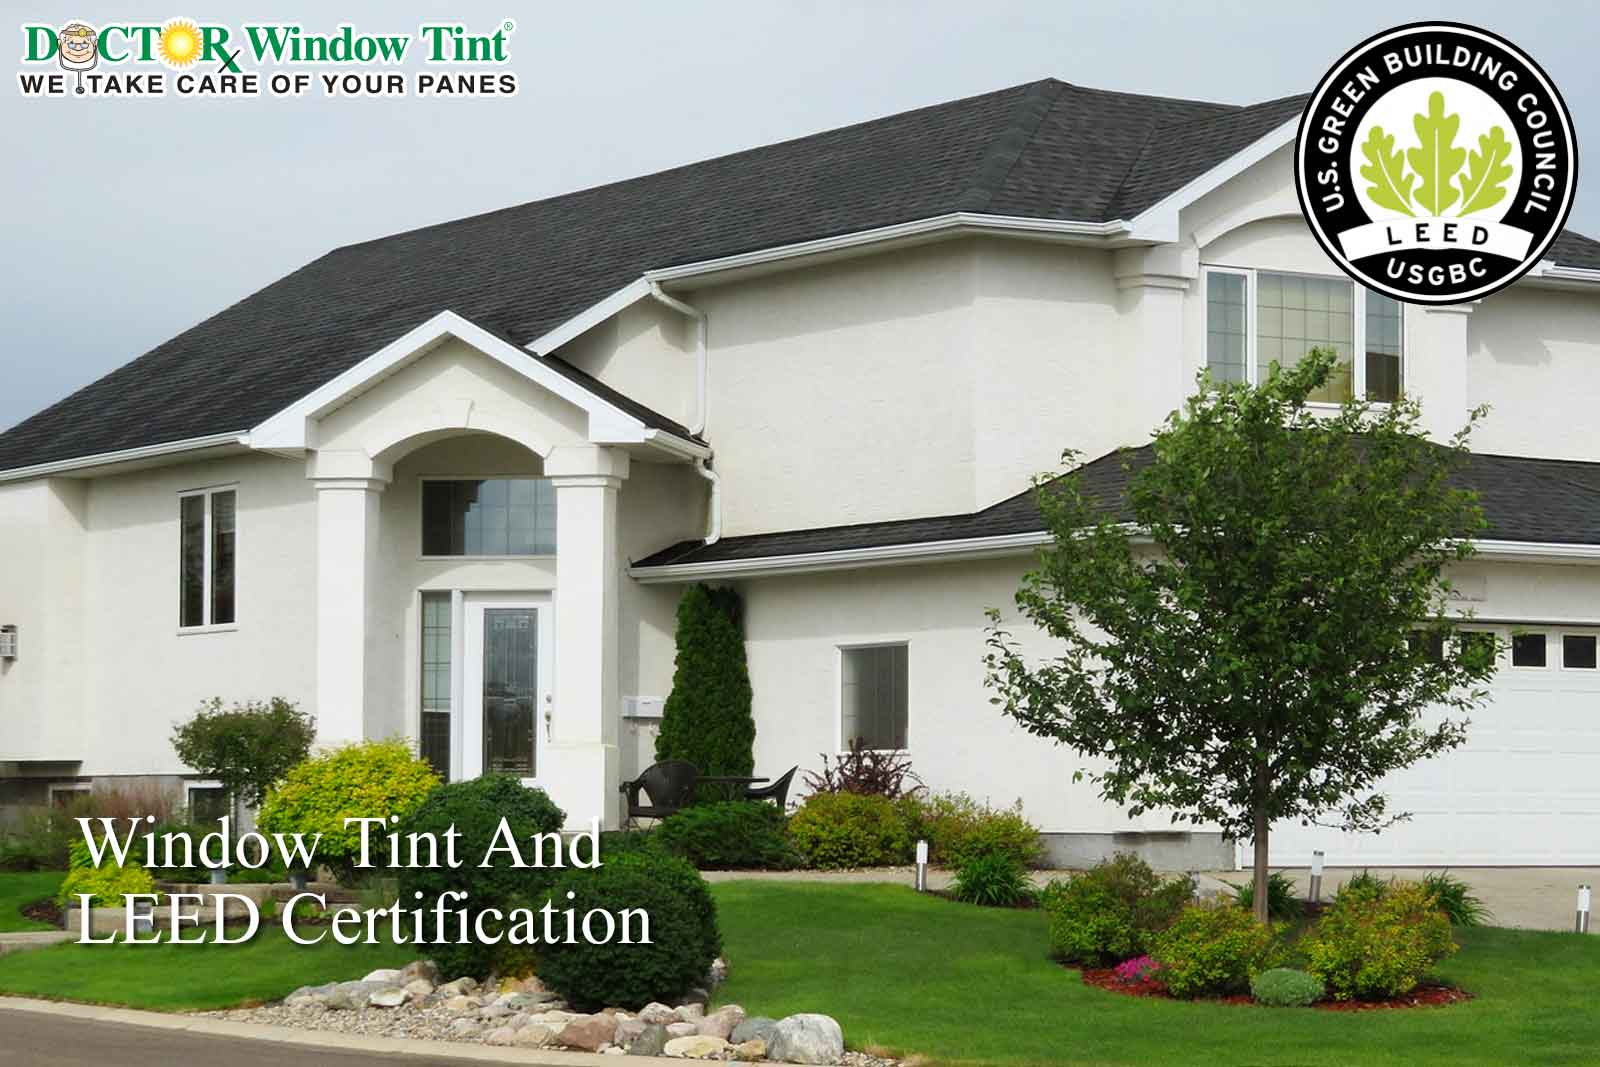 Window-Tint-And-LEED-Certification